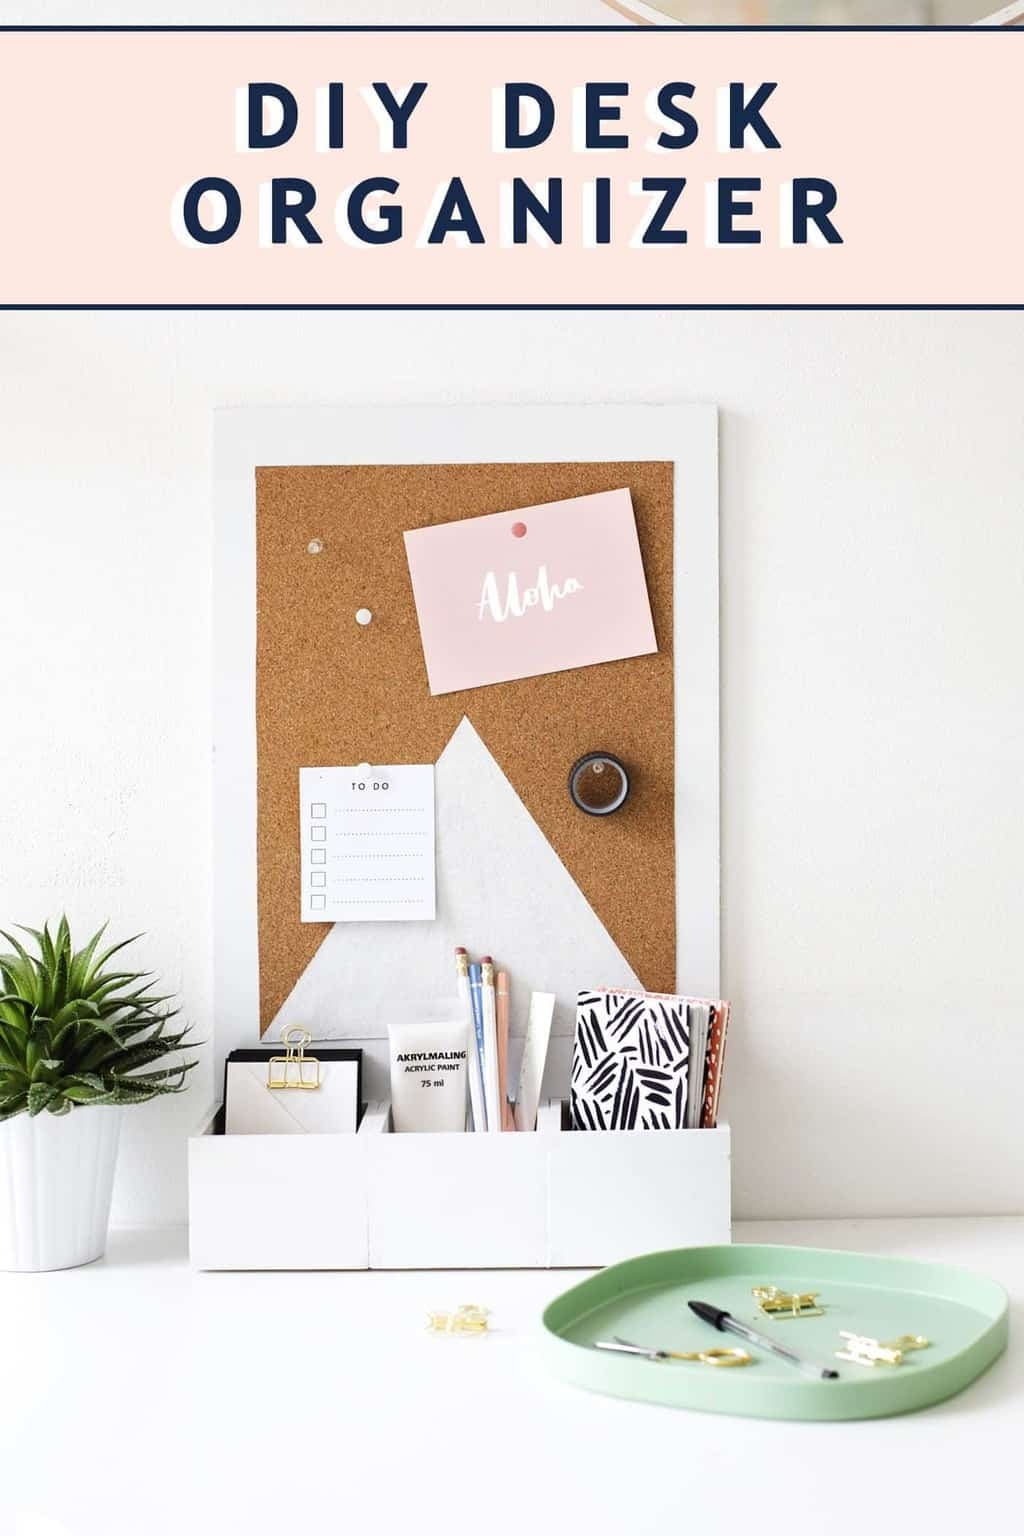 photo of how to make a diy desk organizer by top Houston lifestyle blogger Ashley Rose of Sugar & Cloth